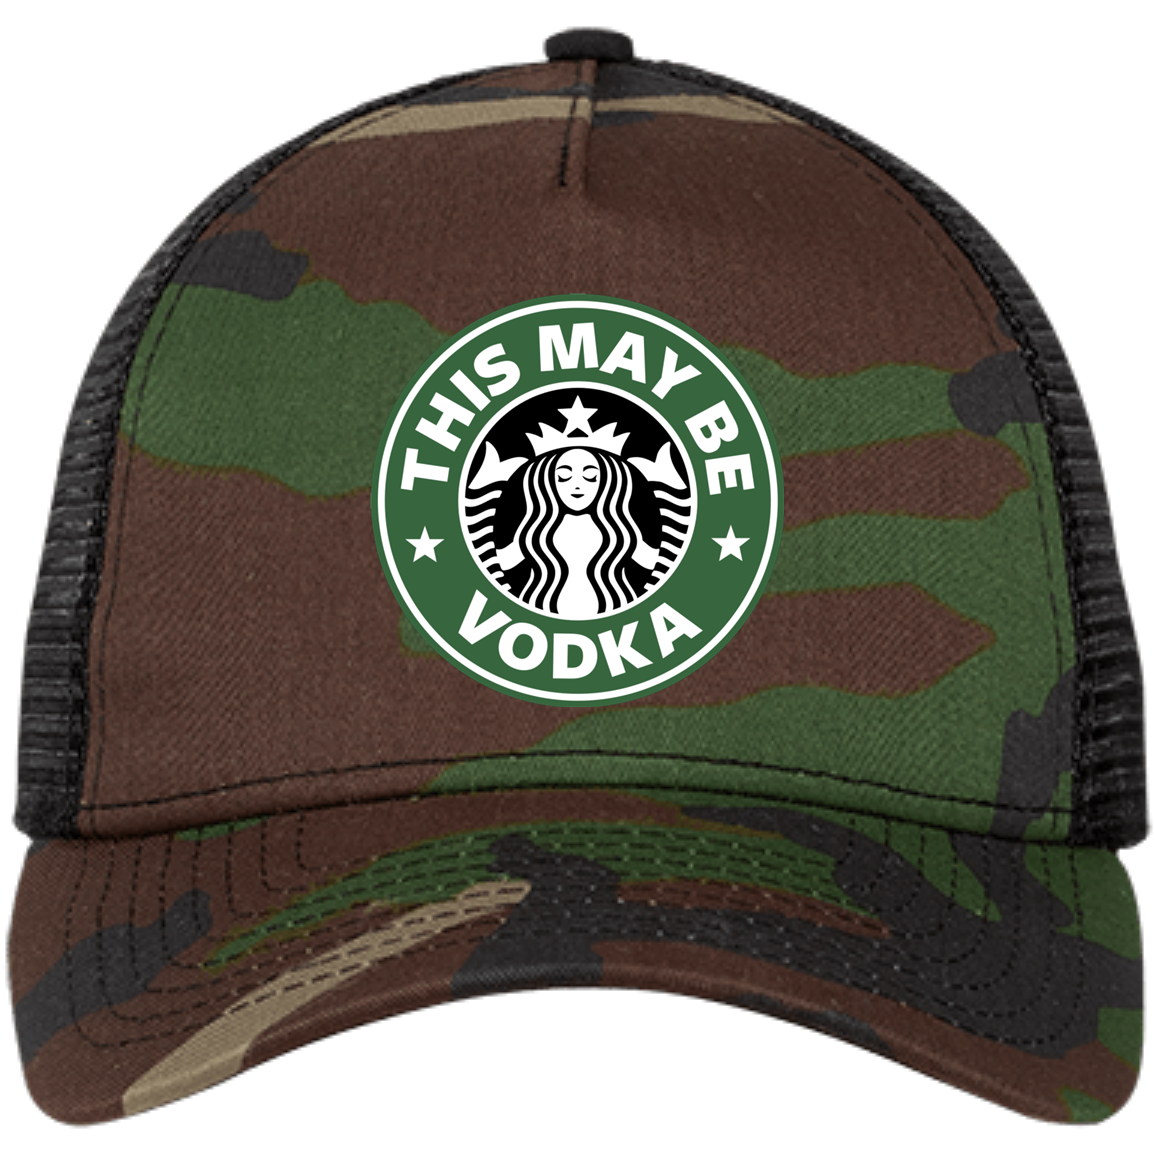 This May Be Vodka Camo Trucker Hat